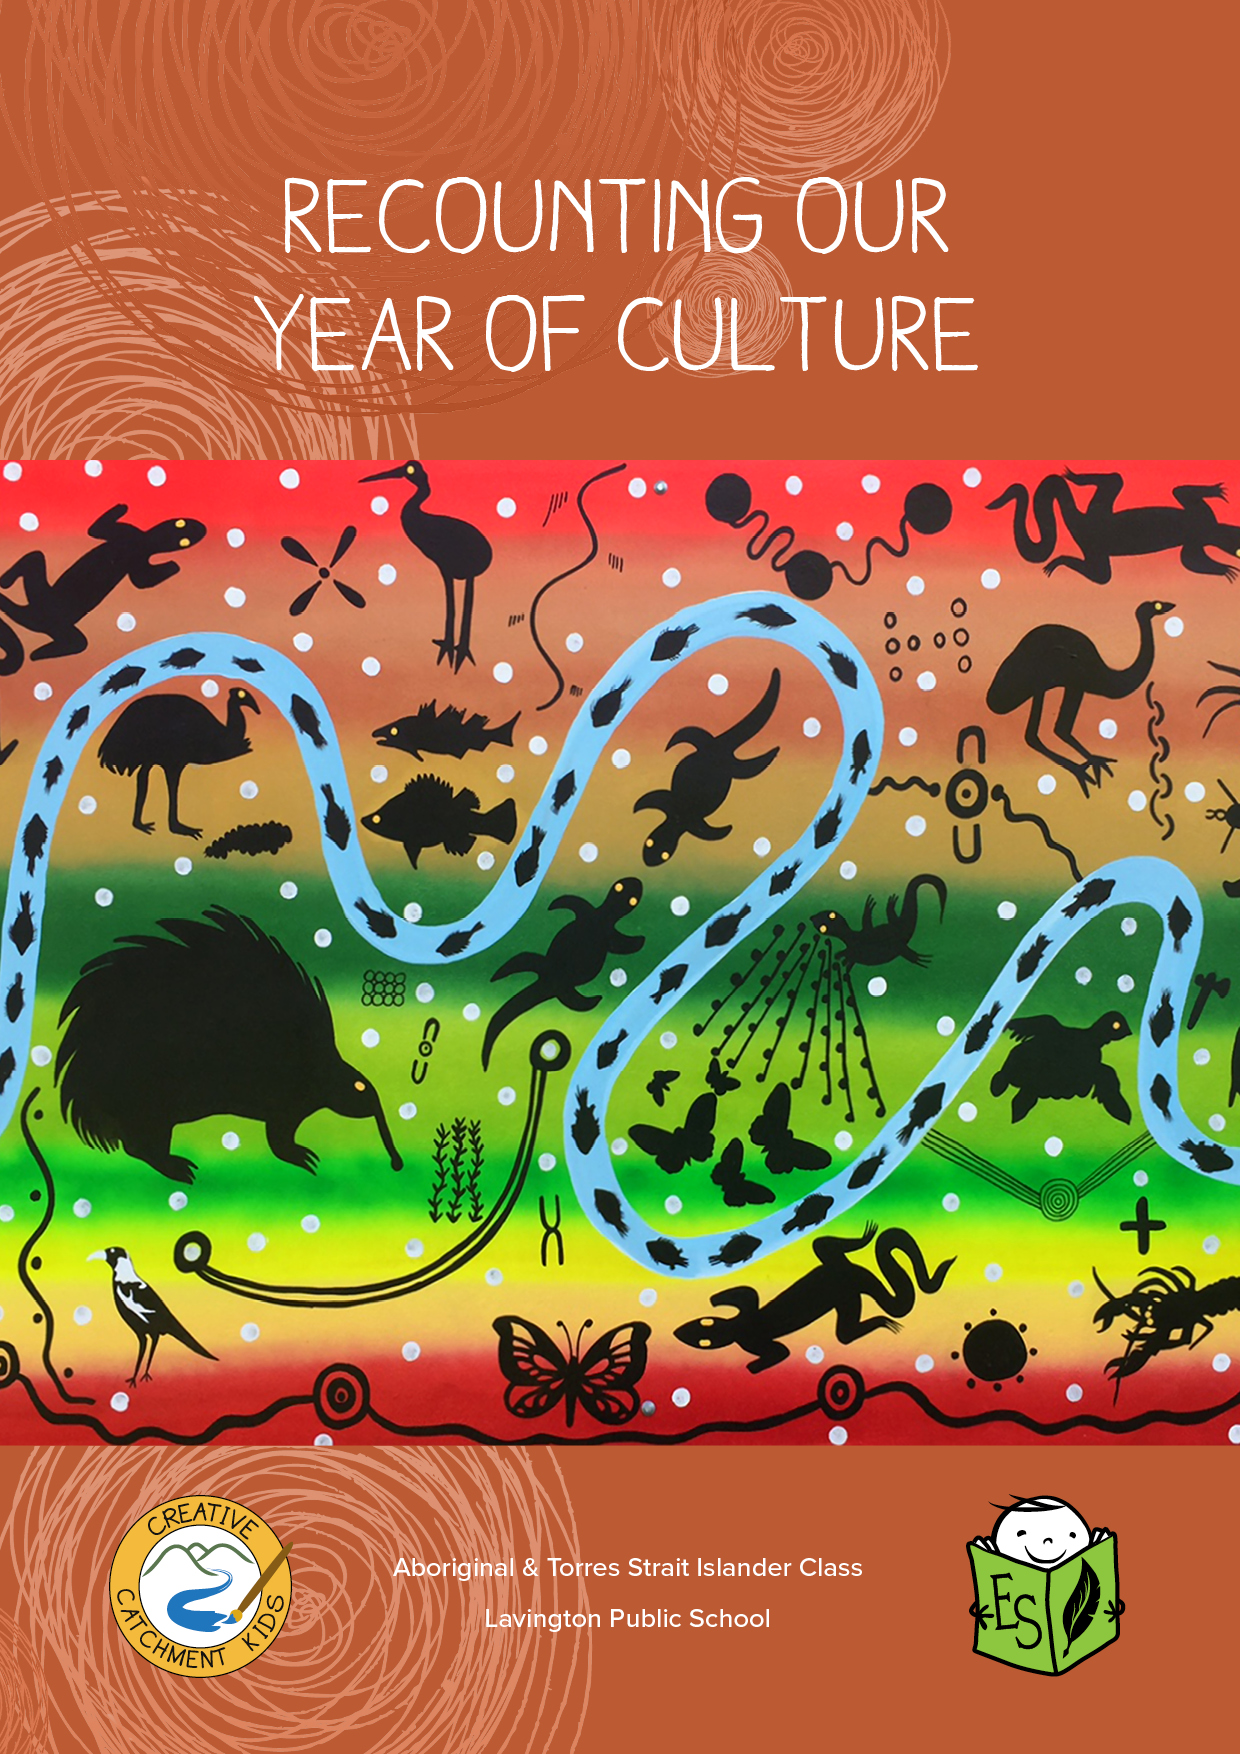 Recounting a year of Culture